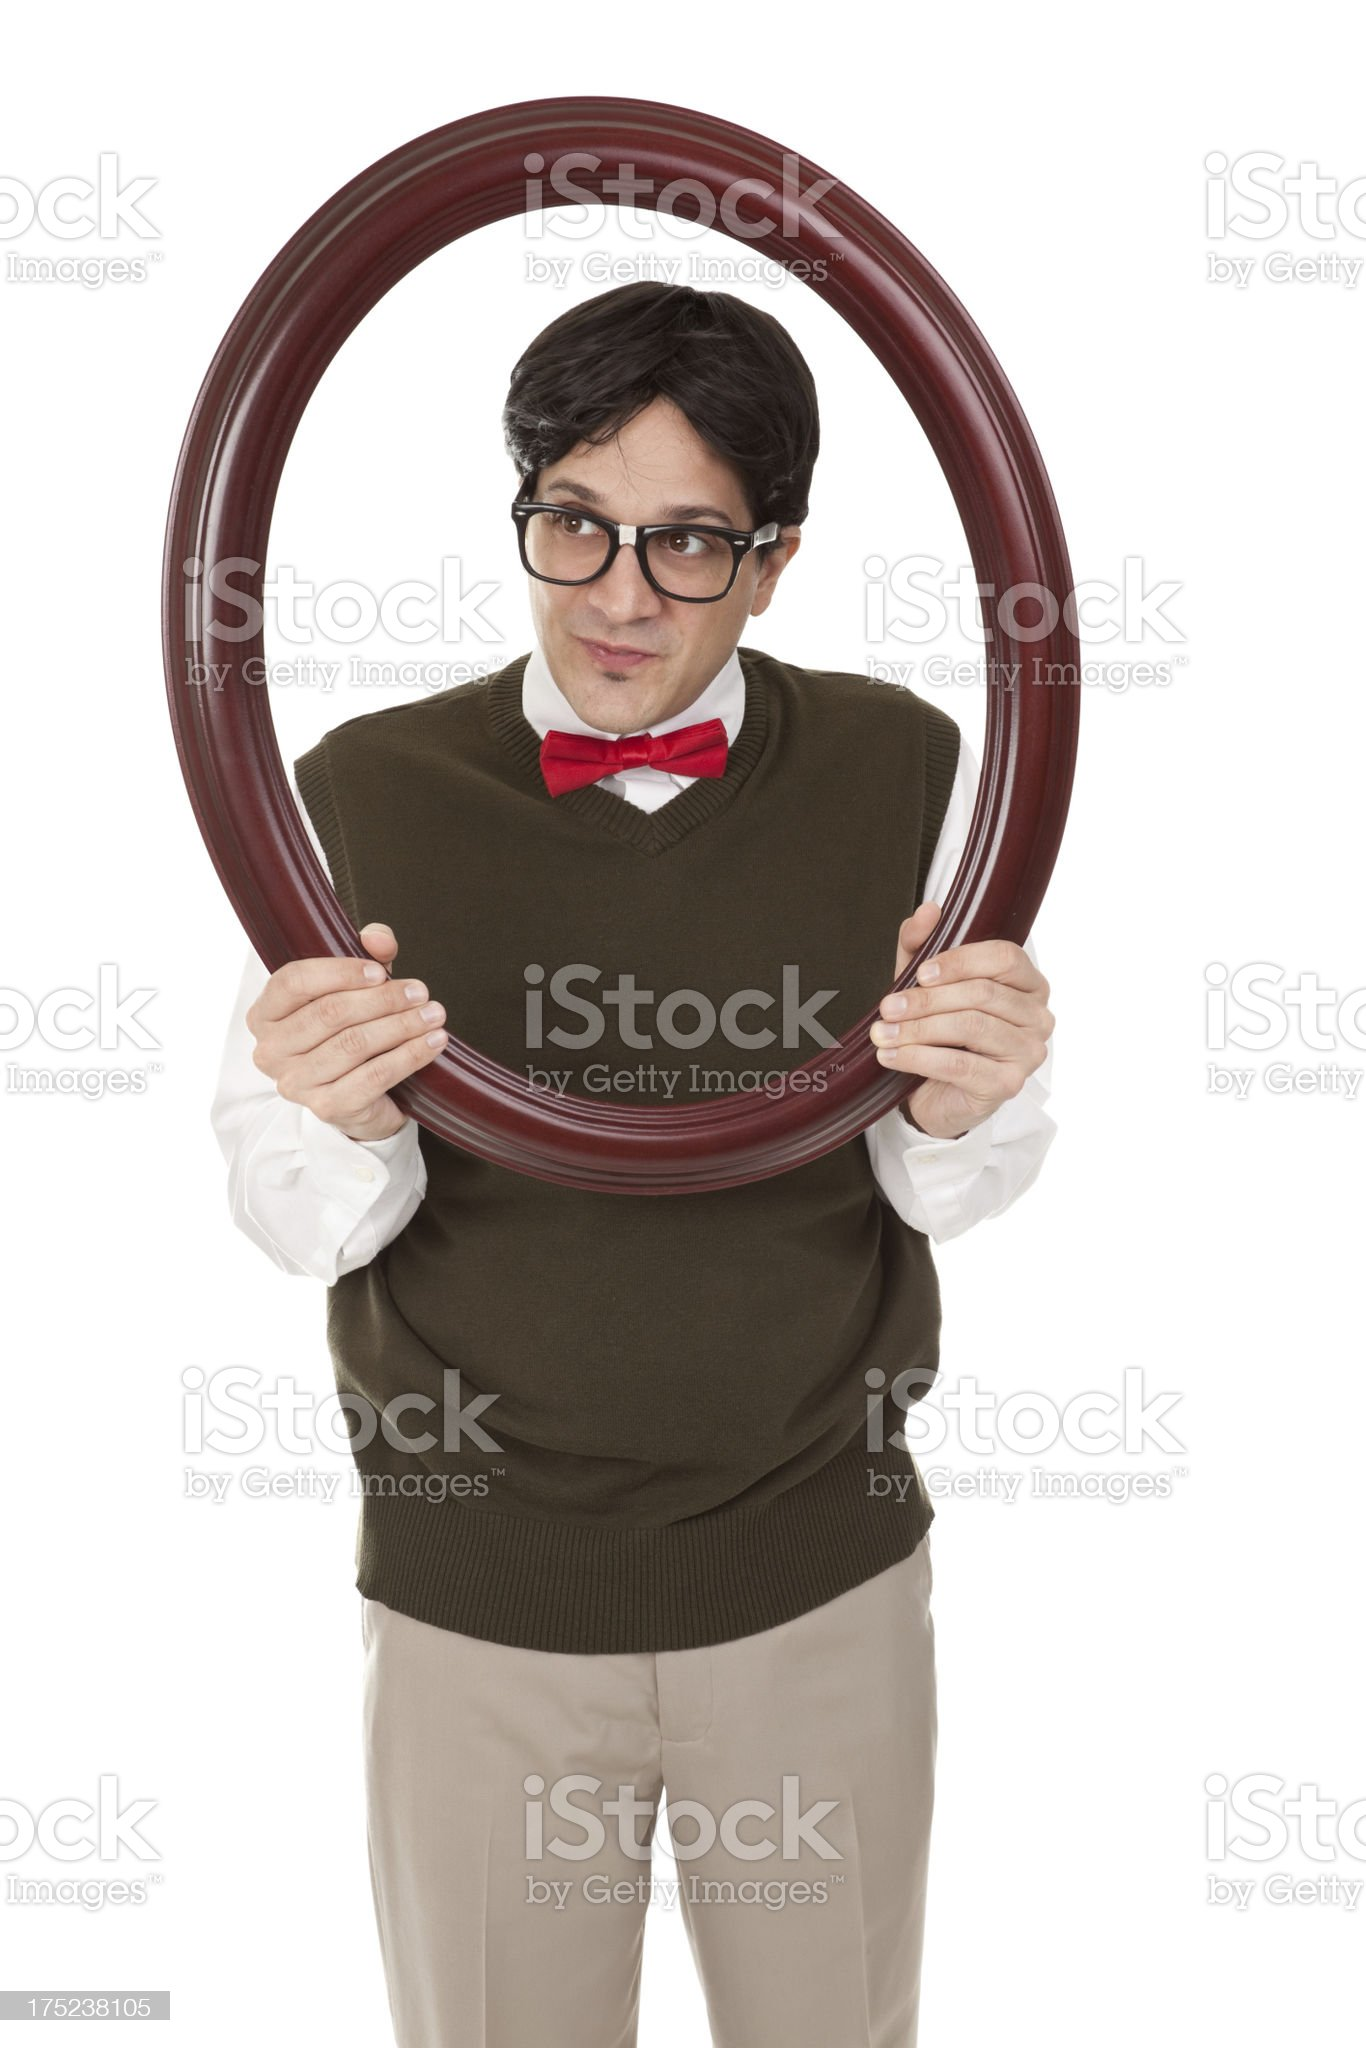 Nerd Posing Though Picture Frame Isolated On Whte royalty-free stock photo